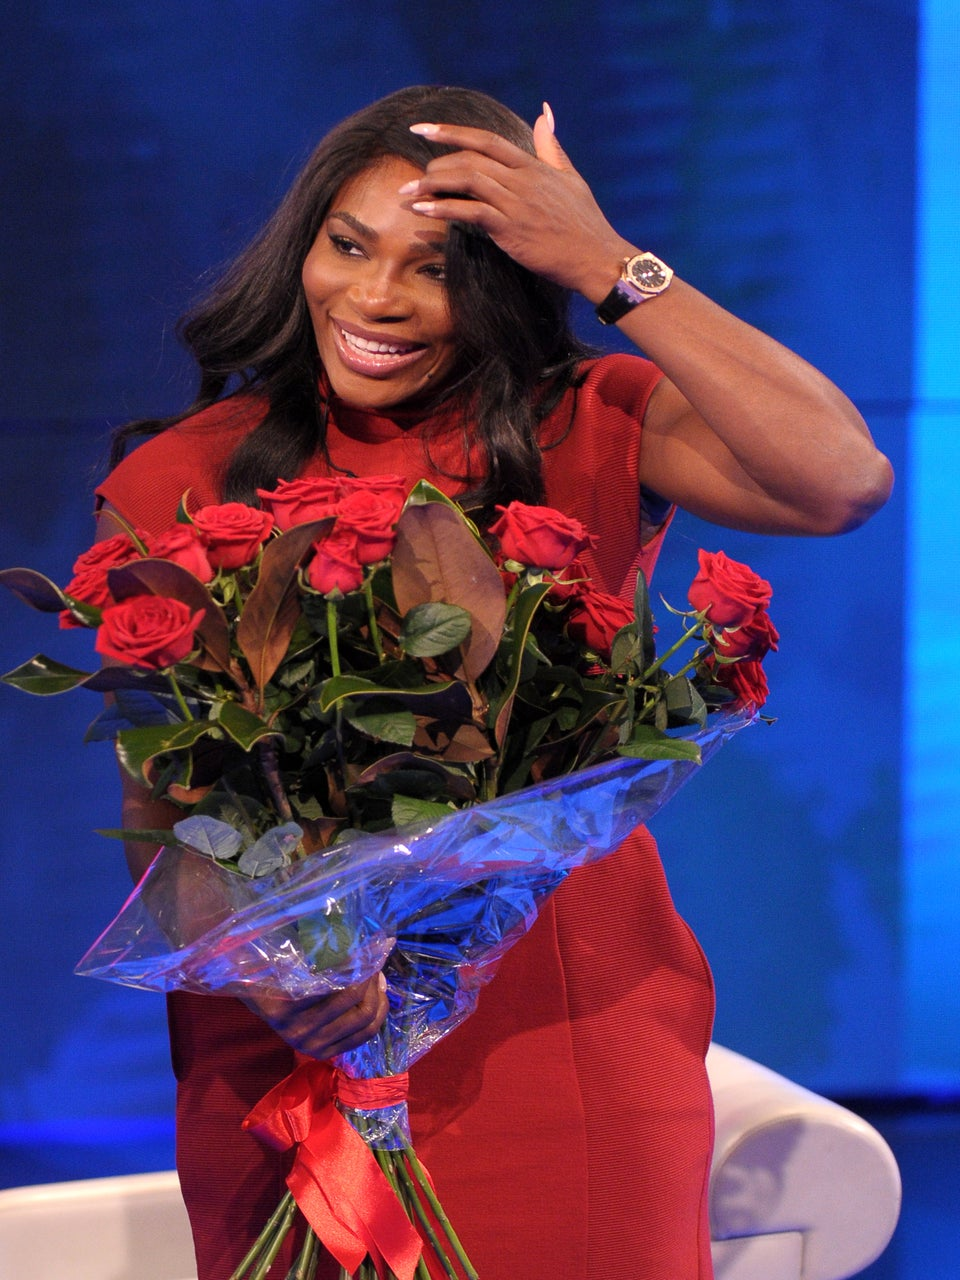 'You Need A Lot of Confidence to Change The World' Says Serena Williams